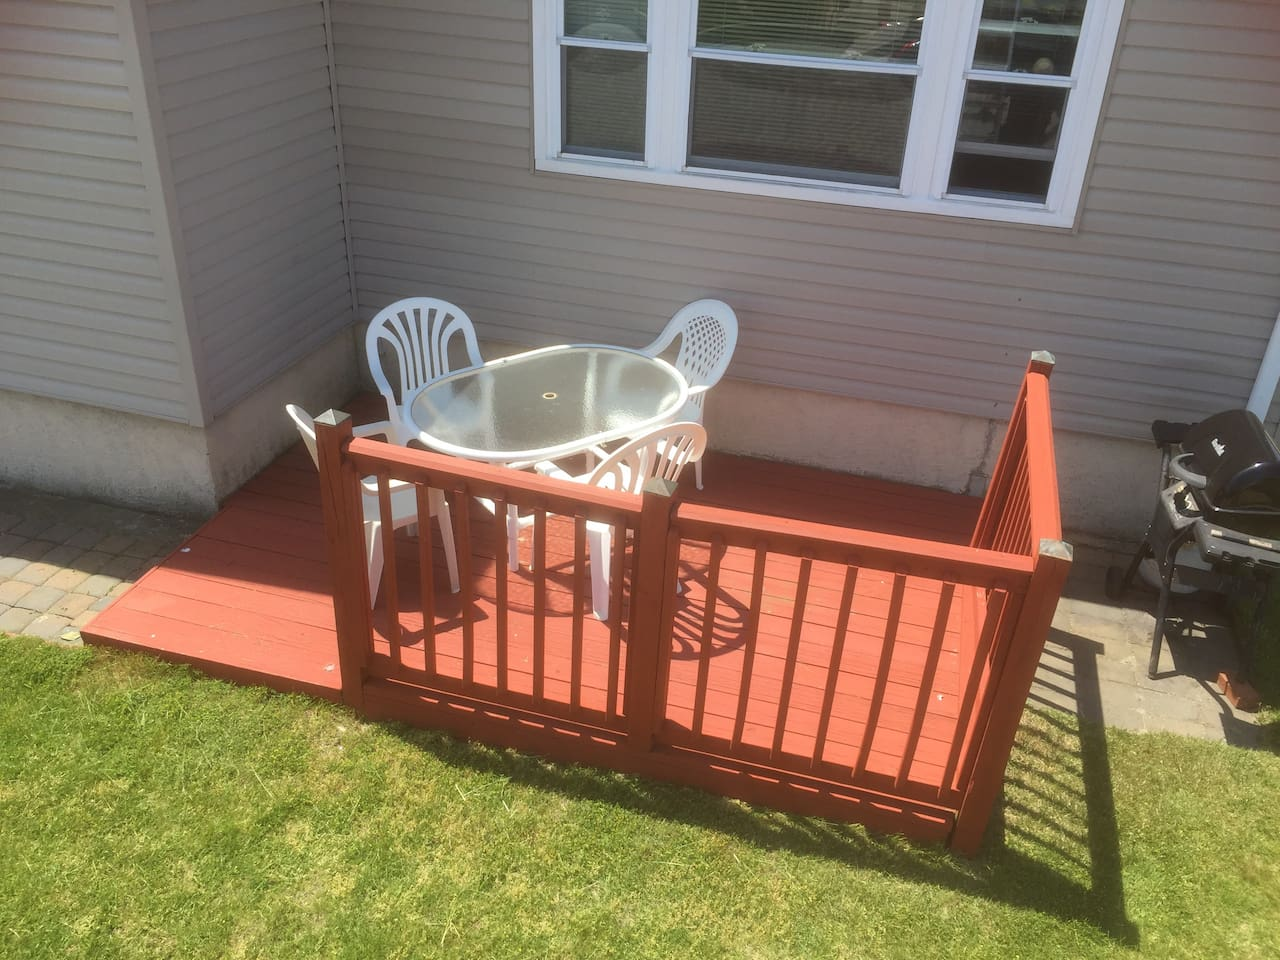 Deck with patio furniture and gas BBQ in front of property.